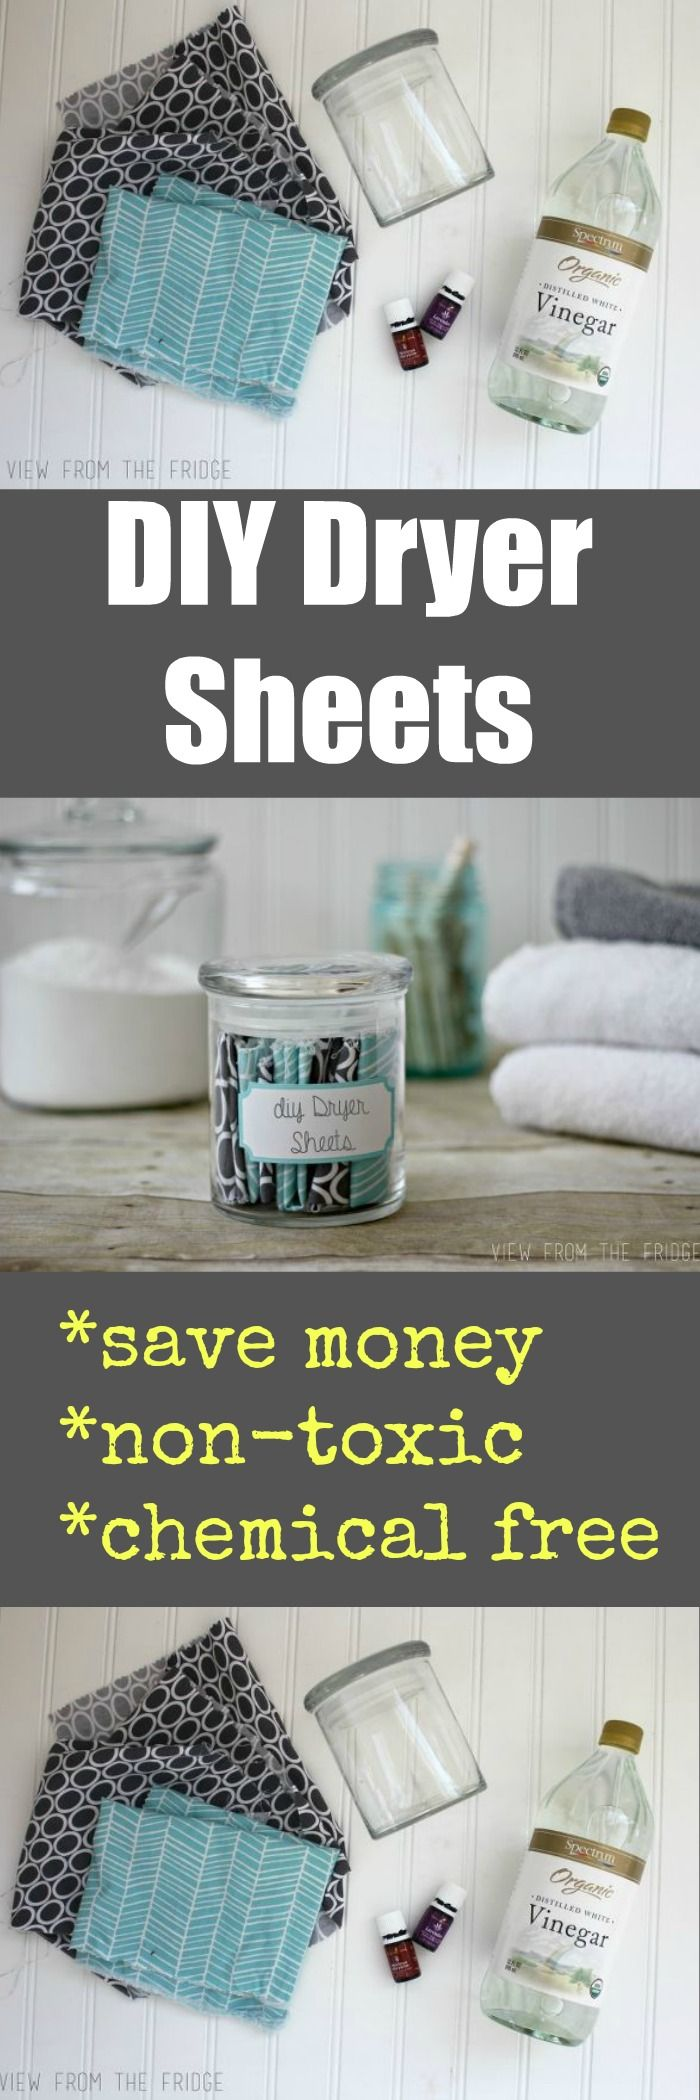 Do you know how many awful chemicals are in commercial, store bought dryer sheets?!? Way too many. It's SO easy to make your own, and they work great! You can even customize your own scent!